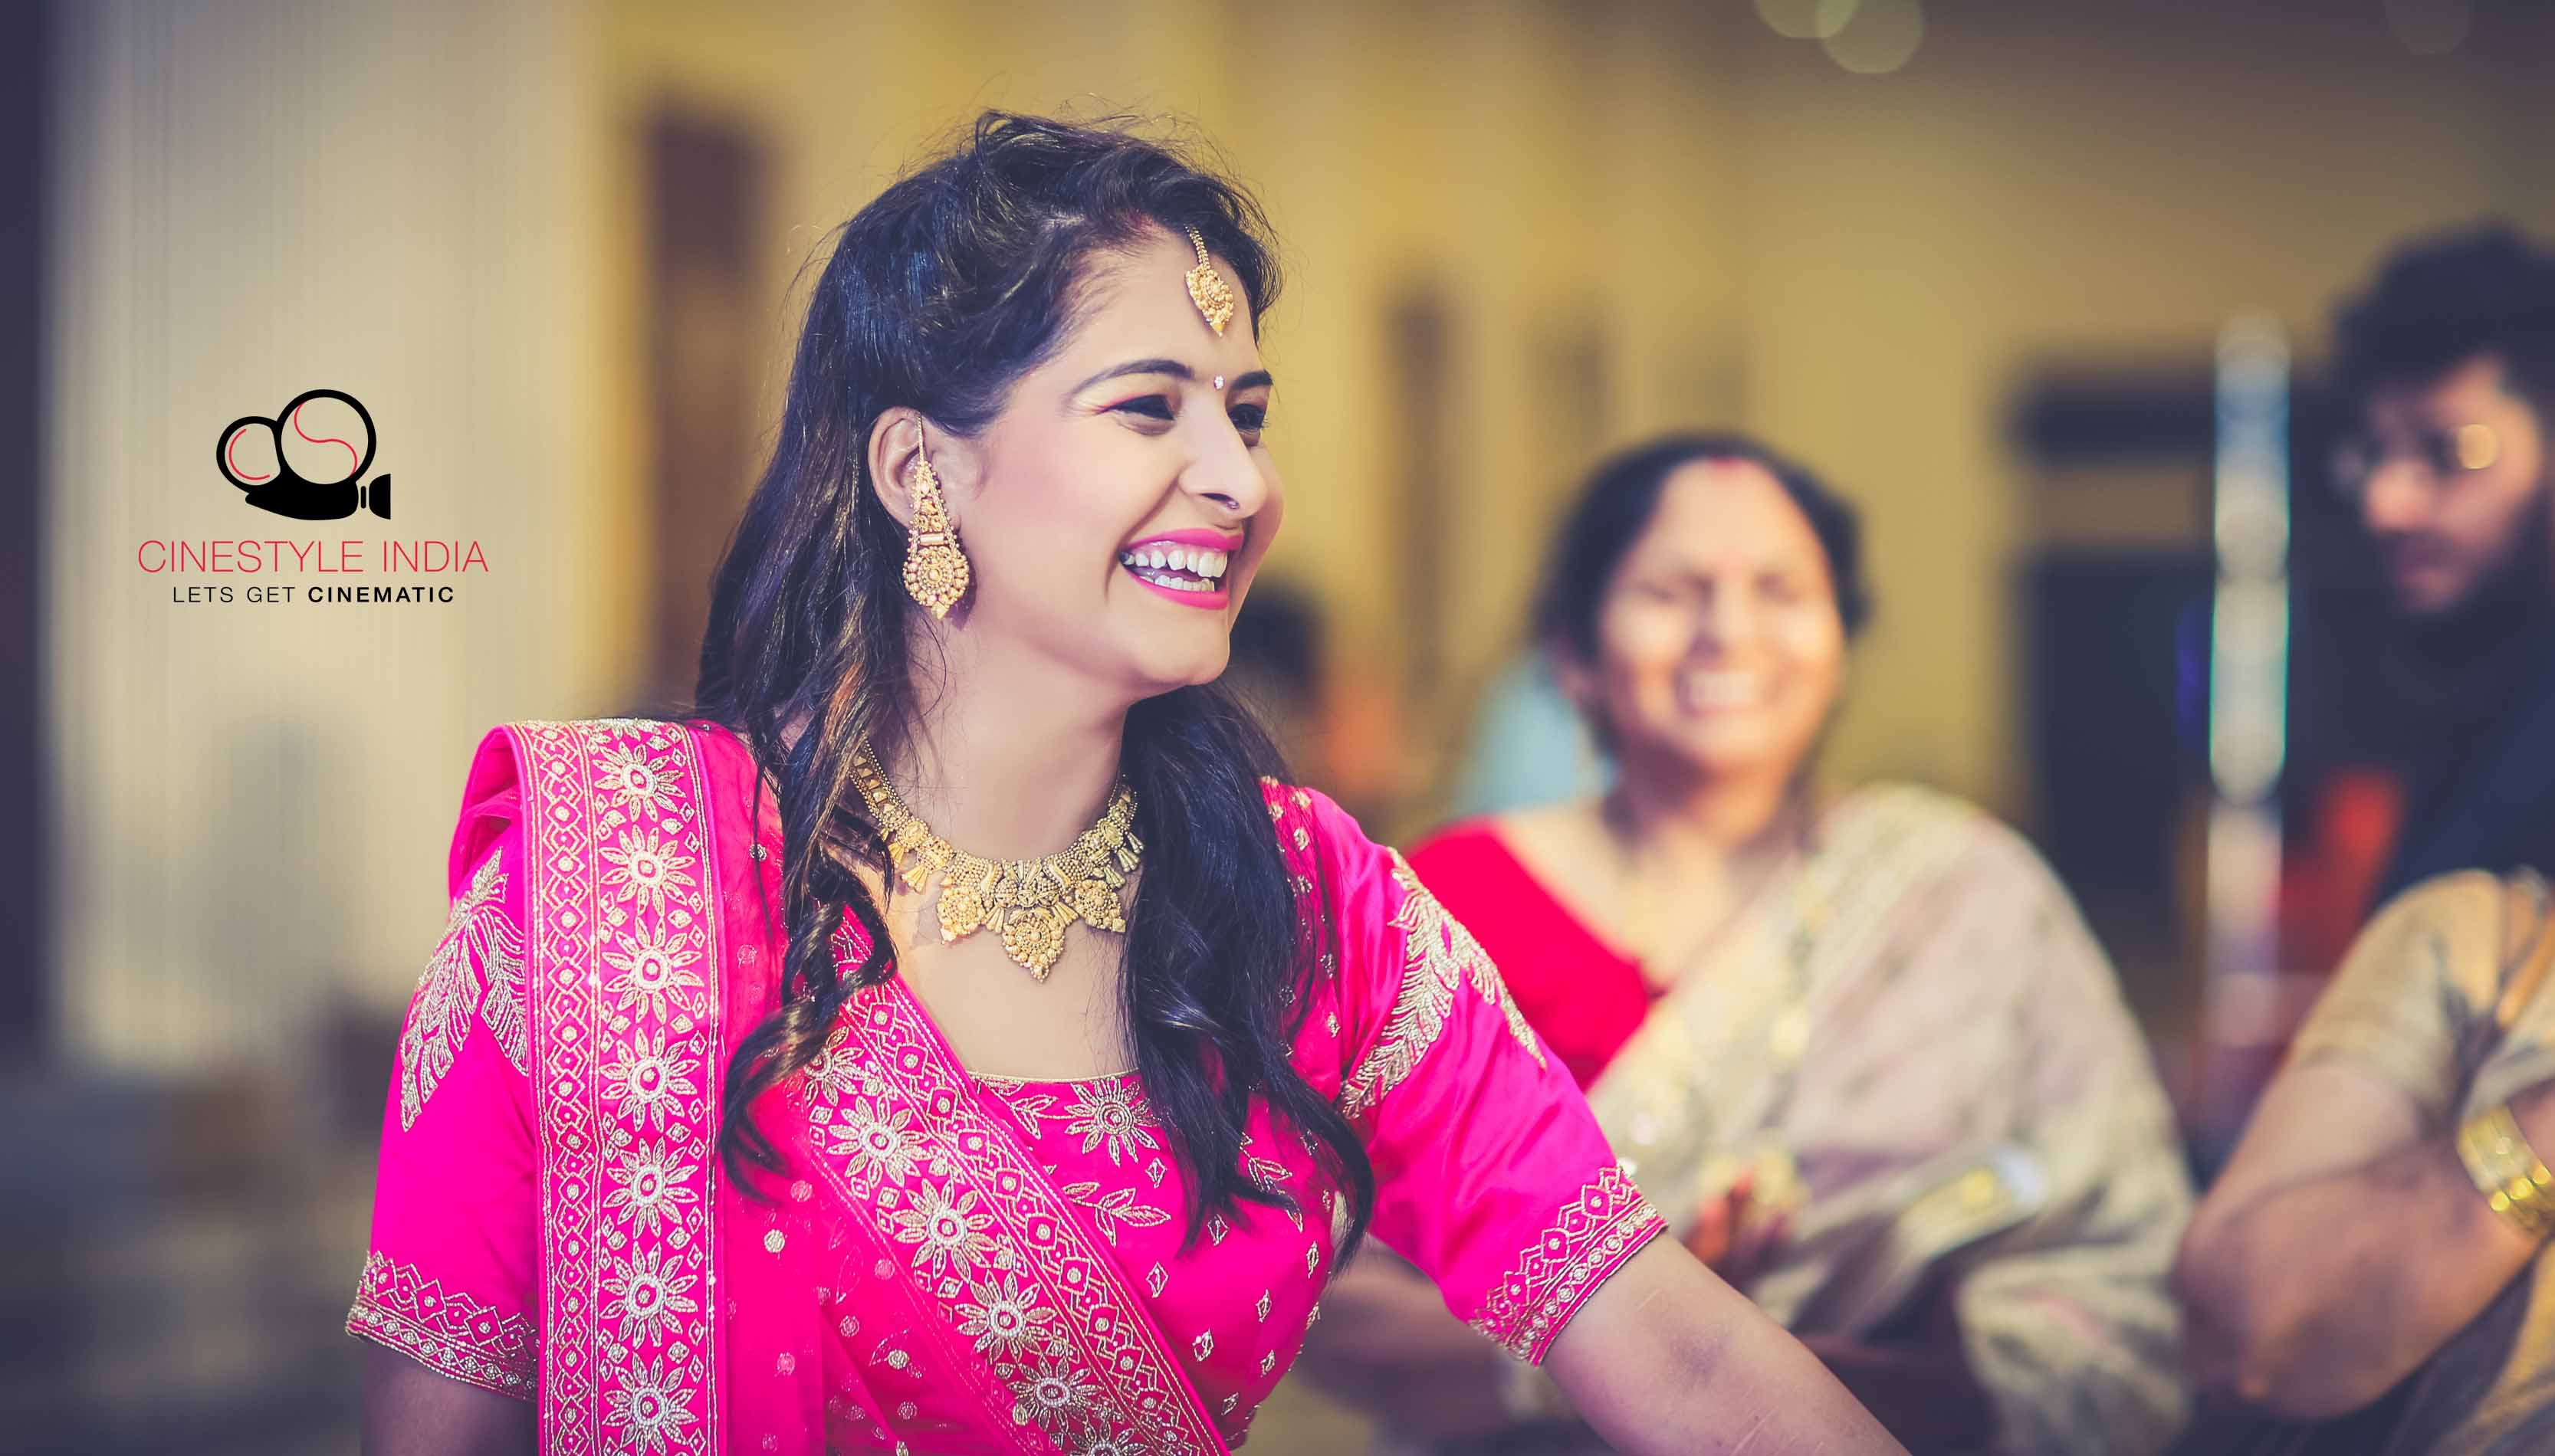 Free stock photo of candid, CINESTYLEINDIA-photographers in